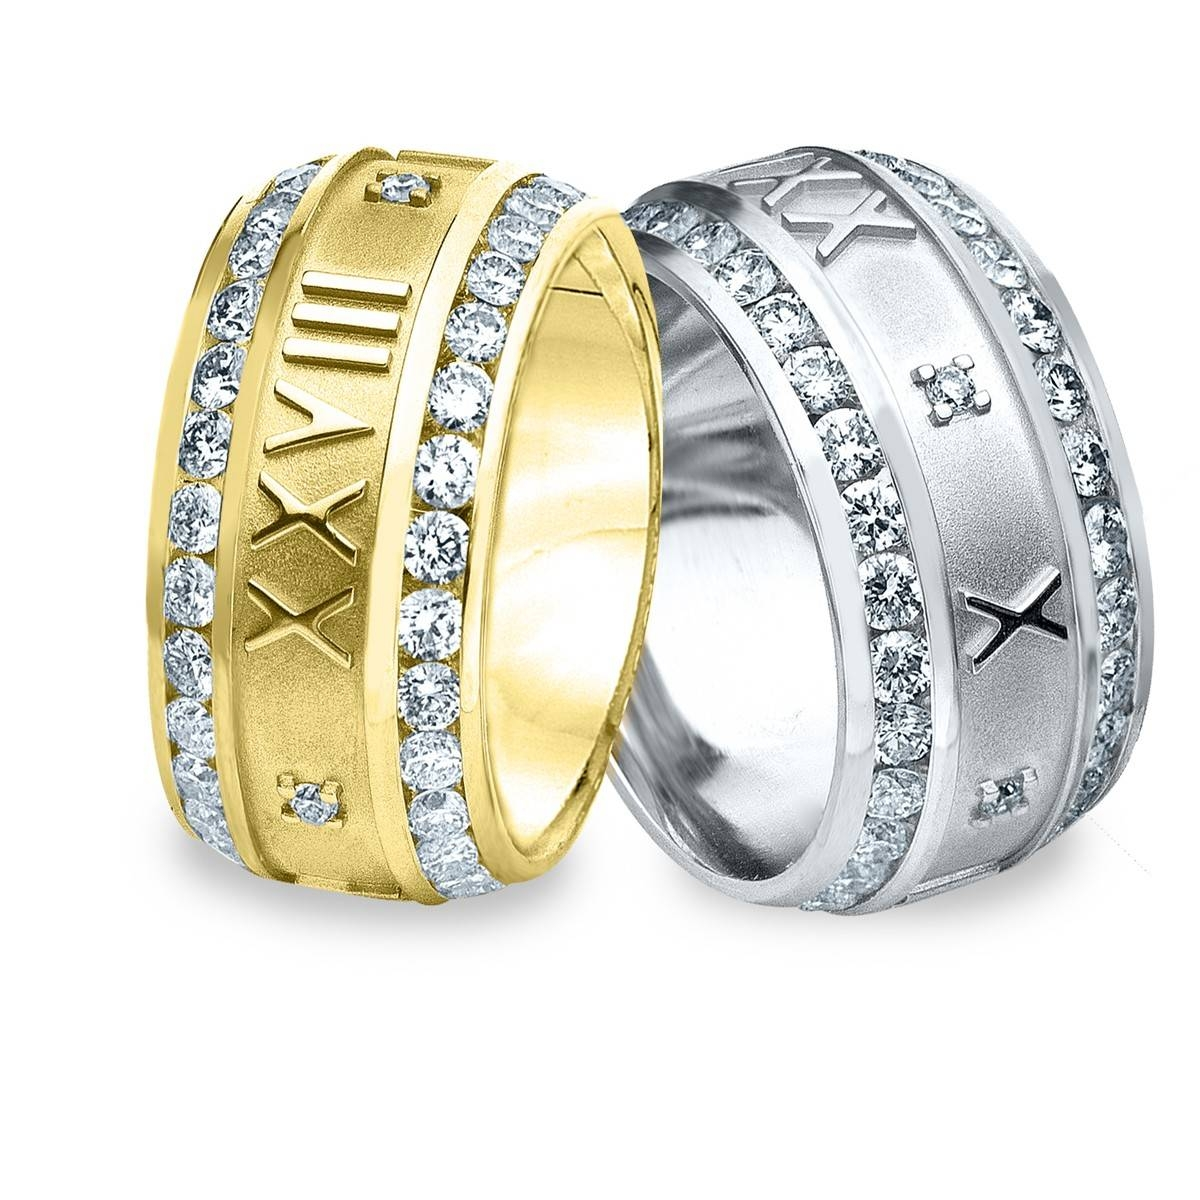 Men's Diamond Rings | Men's Diamond Wedding Bands | Men's Throughout Most Recent Mens Anniversary Rings (Gallery 3 of 25)